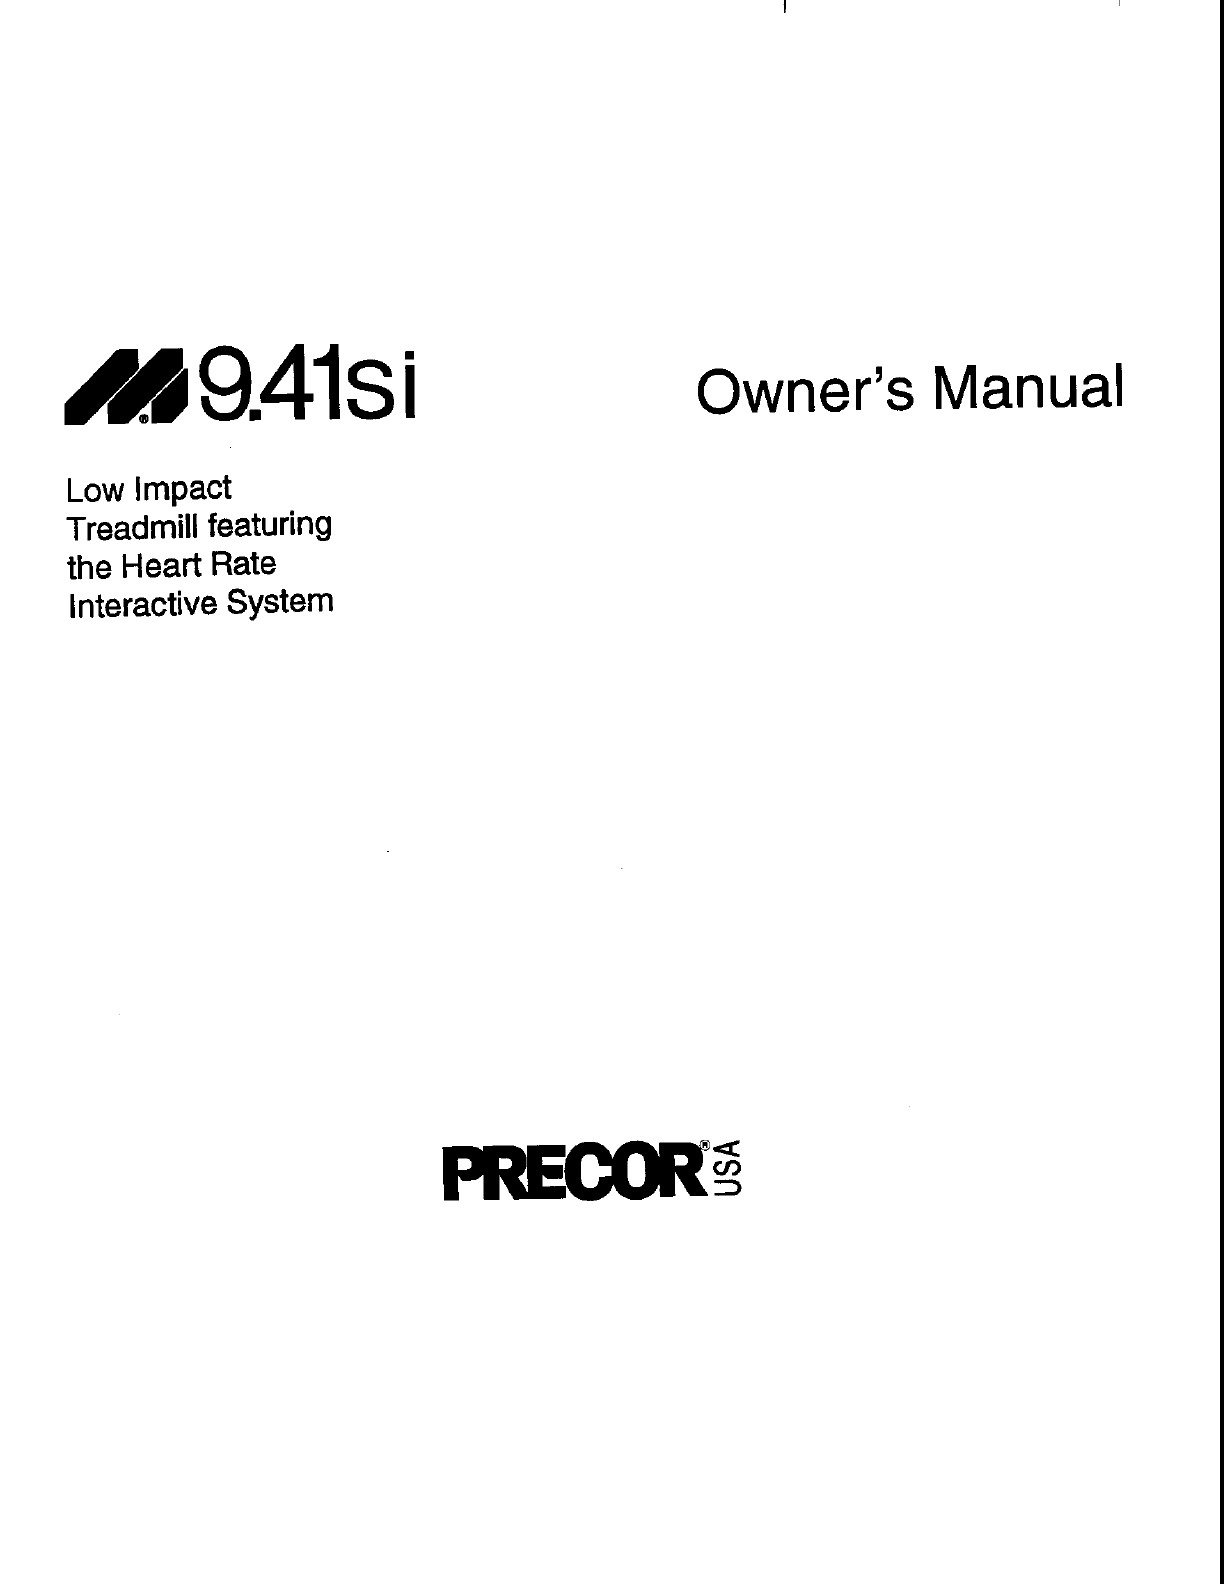 Precor Treadmill Wiring Diagram Clicking Noise Exercise Ge Oven Jdp37 Si User Guide Manualsonline Com Next